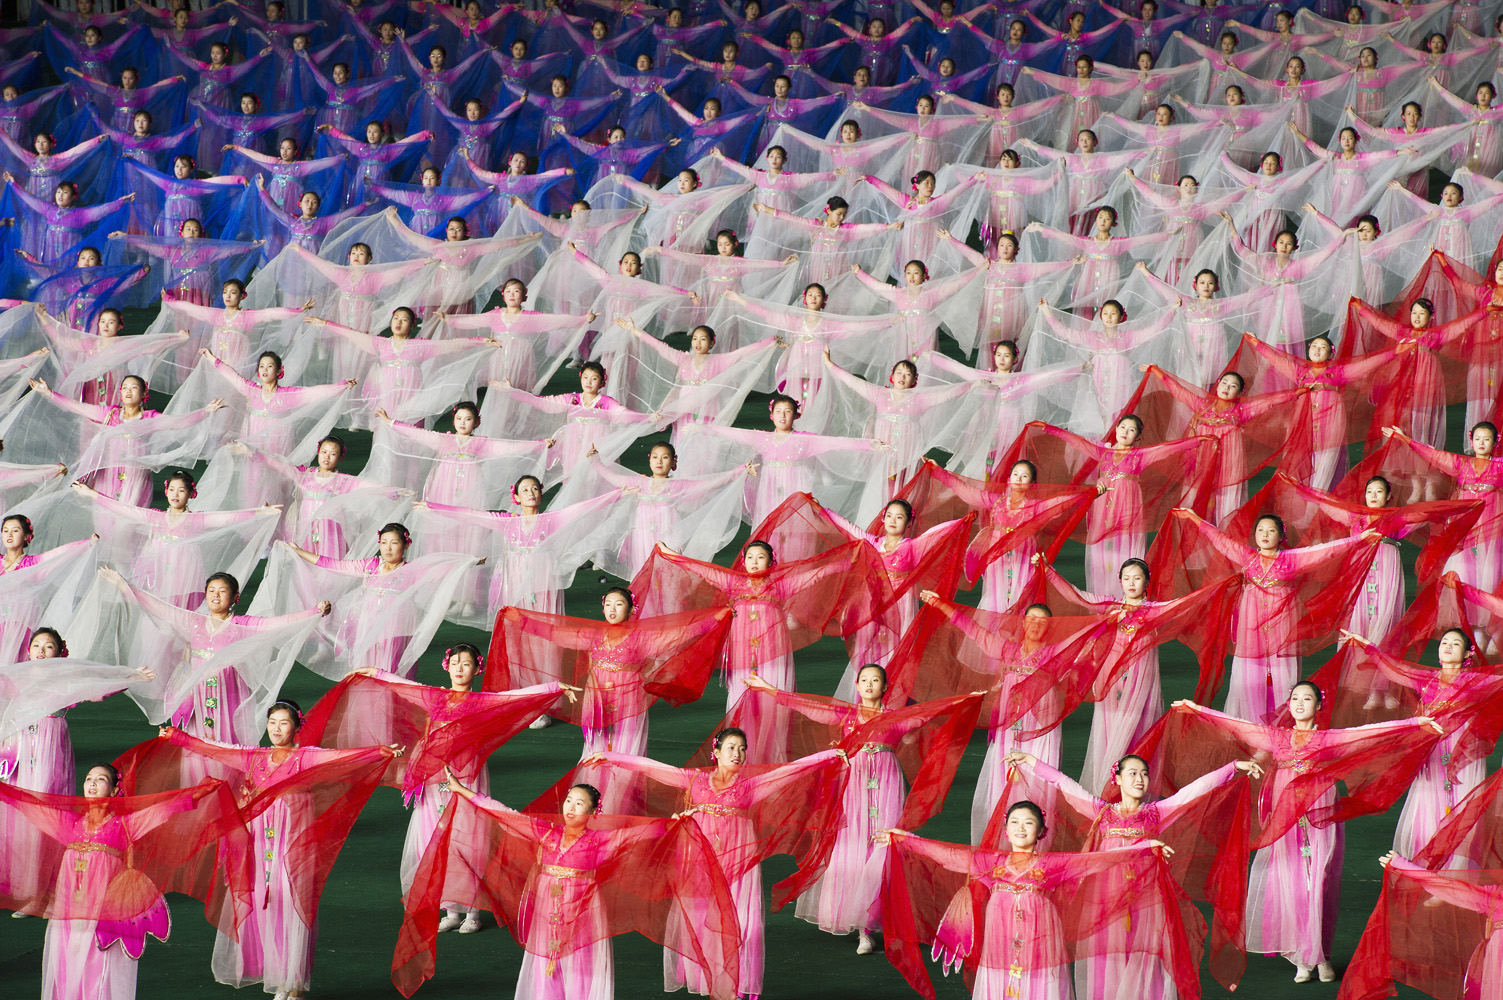 Arirang Mass Games at Mayday Stadium in Pyongyang, North Korea,  a 120,000 performer-strong spectacle of gymnastic choreography with military precision, in one of the biggest sport arenas in the world. At the stand behind the field 20,000 person flip card mosaic to form detailed composite pictures.The performance takes place for two months in August and September. From as young as 5 years old kids are being selected to participate in the Mass Games.